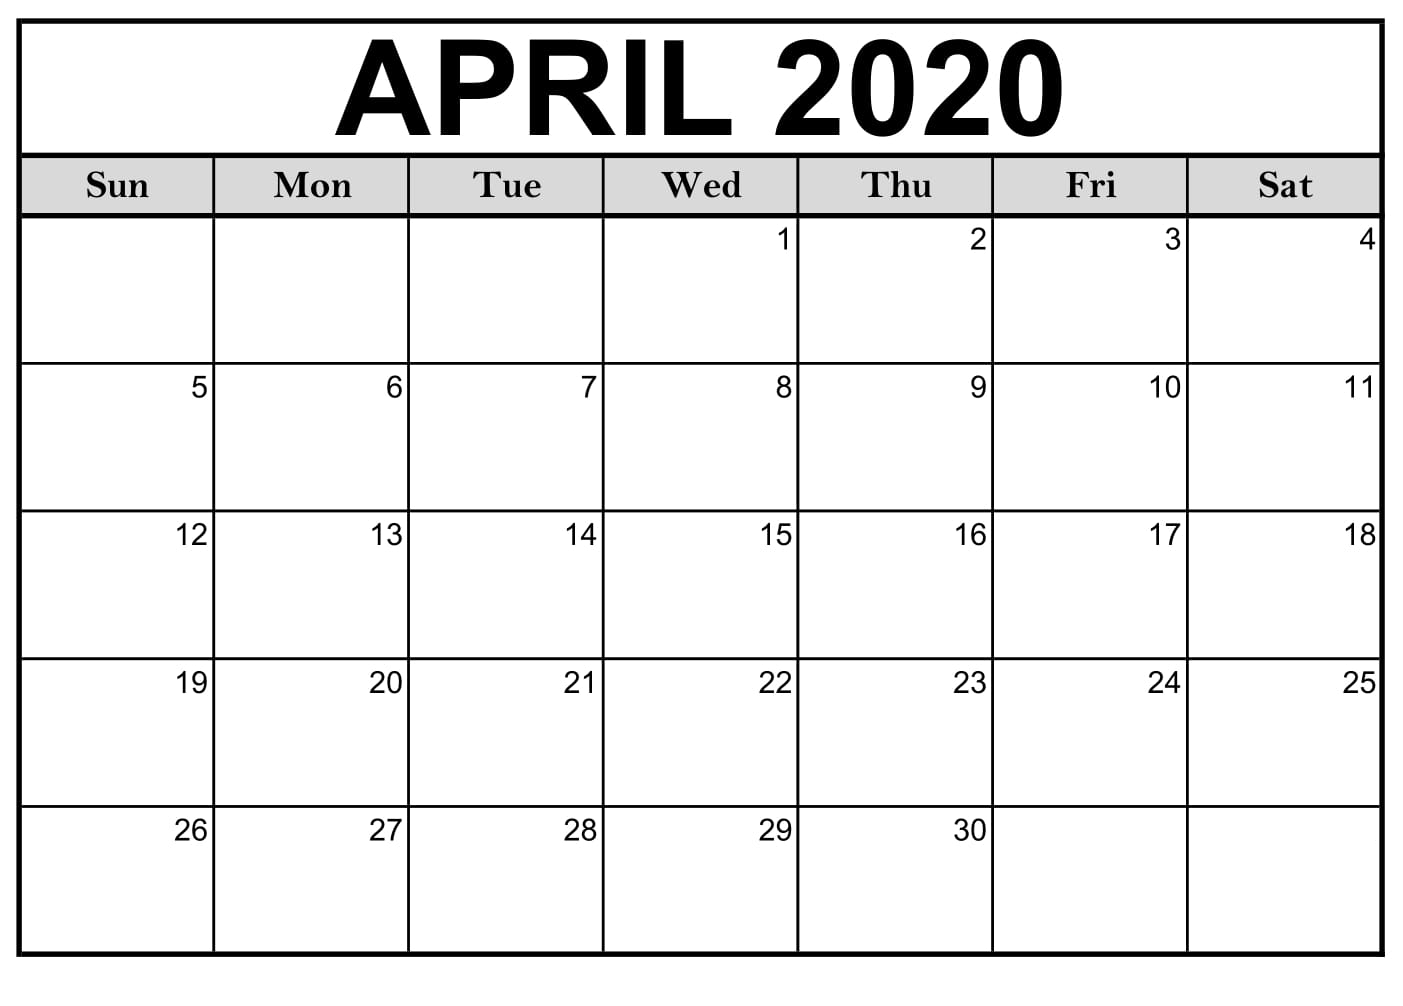 April 2020 Printable Calendar Excel